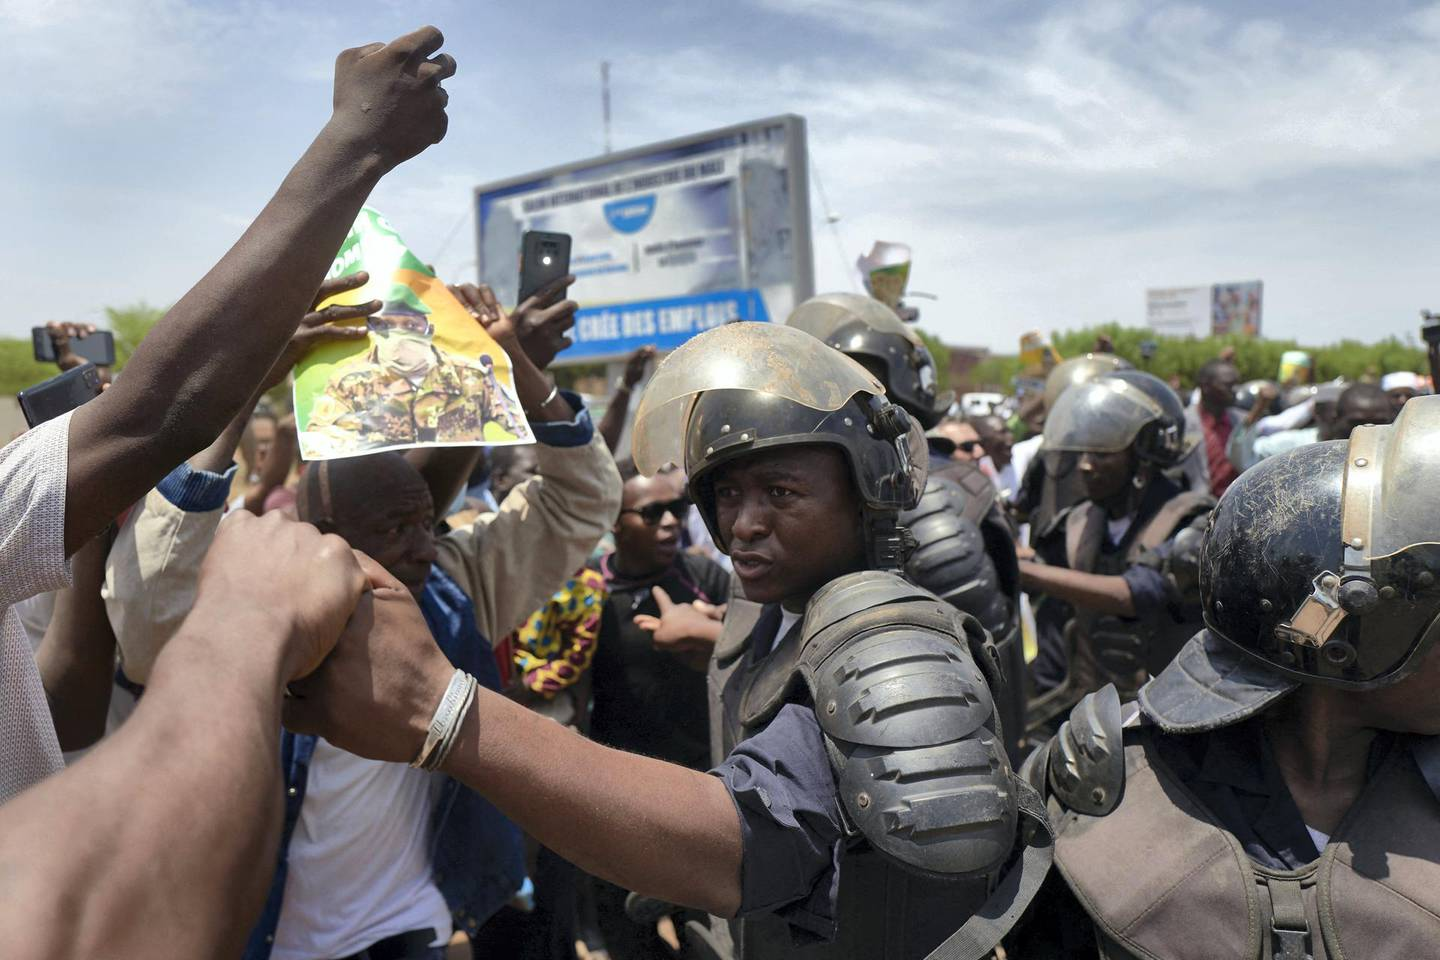 """Malian riot police keep supporters away from the vehicle of new President of Mali's transitional government Assimi Goita as he returns from Accra after a meeting with the ECOWAS (The Economic Community of West African States) representatives on May 31, 2021. - Malian strongman Colonel Assimi Goita returned home on Monday after West African leaders condemned a second coup that cemented his grip on power, calling on him to name a new prime minister but stopping short of reimposing sanctions.  At a crisis summit in Ghana on Sunday, the Economic Community of West African States (ECOWAS) decided to suspend Mali from the 15-nation bloc and urged Goita to appoint a new civilian premier and forge a new """"inclusive government"""" (Photo by Michele Cattani / AFP)"""